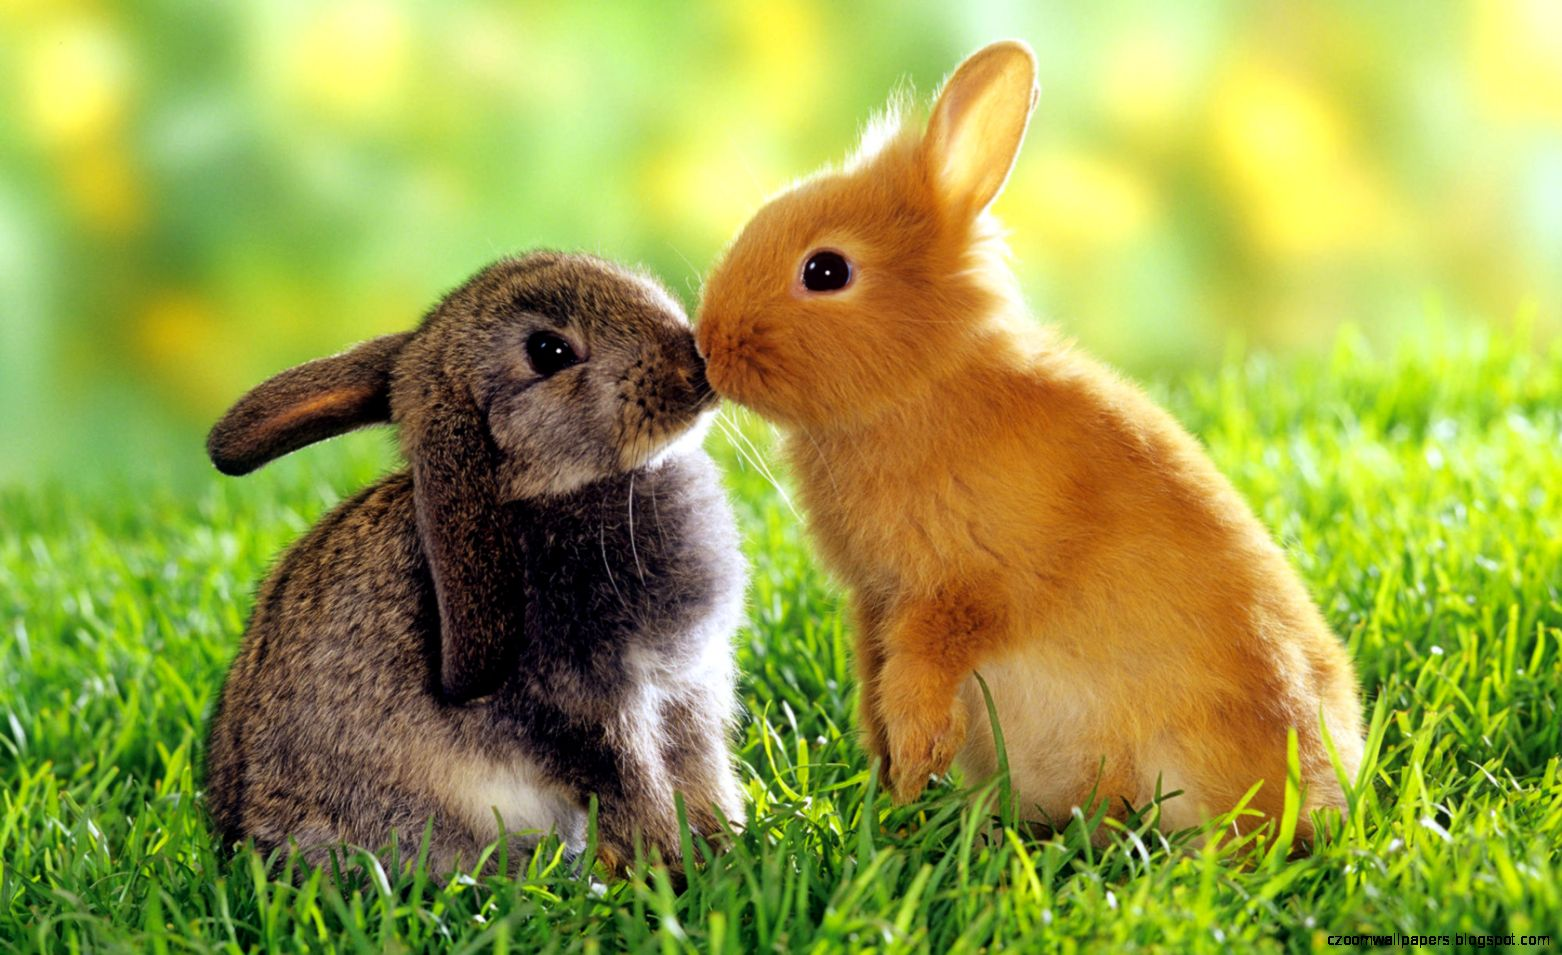 Hd Cute Animals Rabbits Kissing   1680x1050 iWallHD   Wallpaper HD